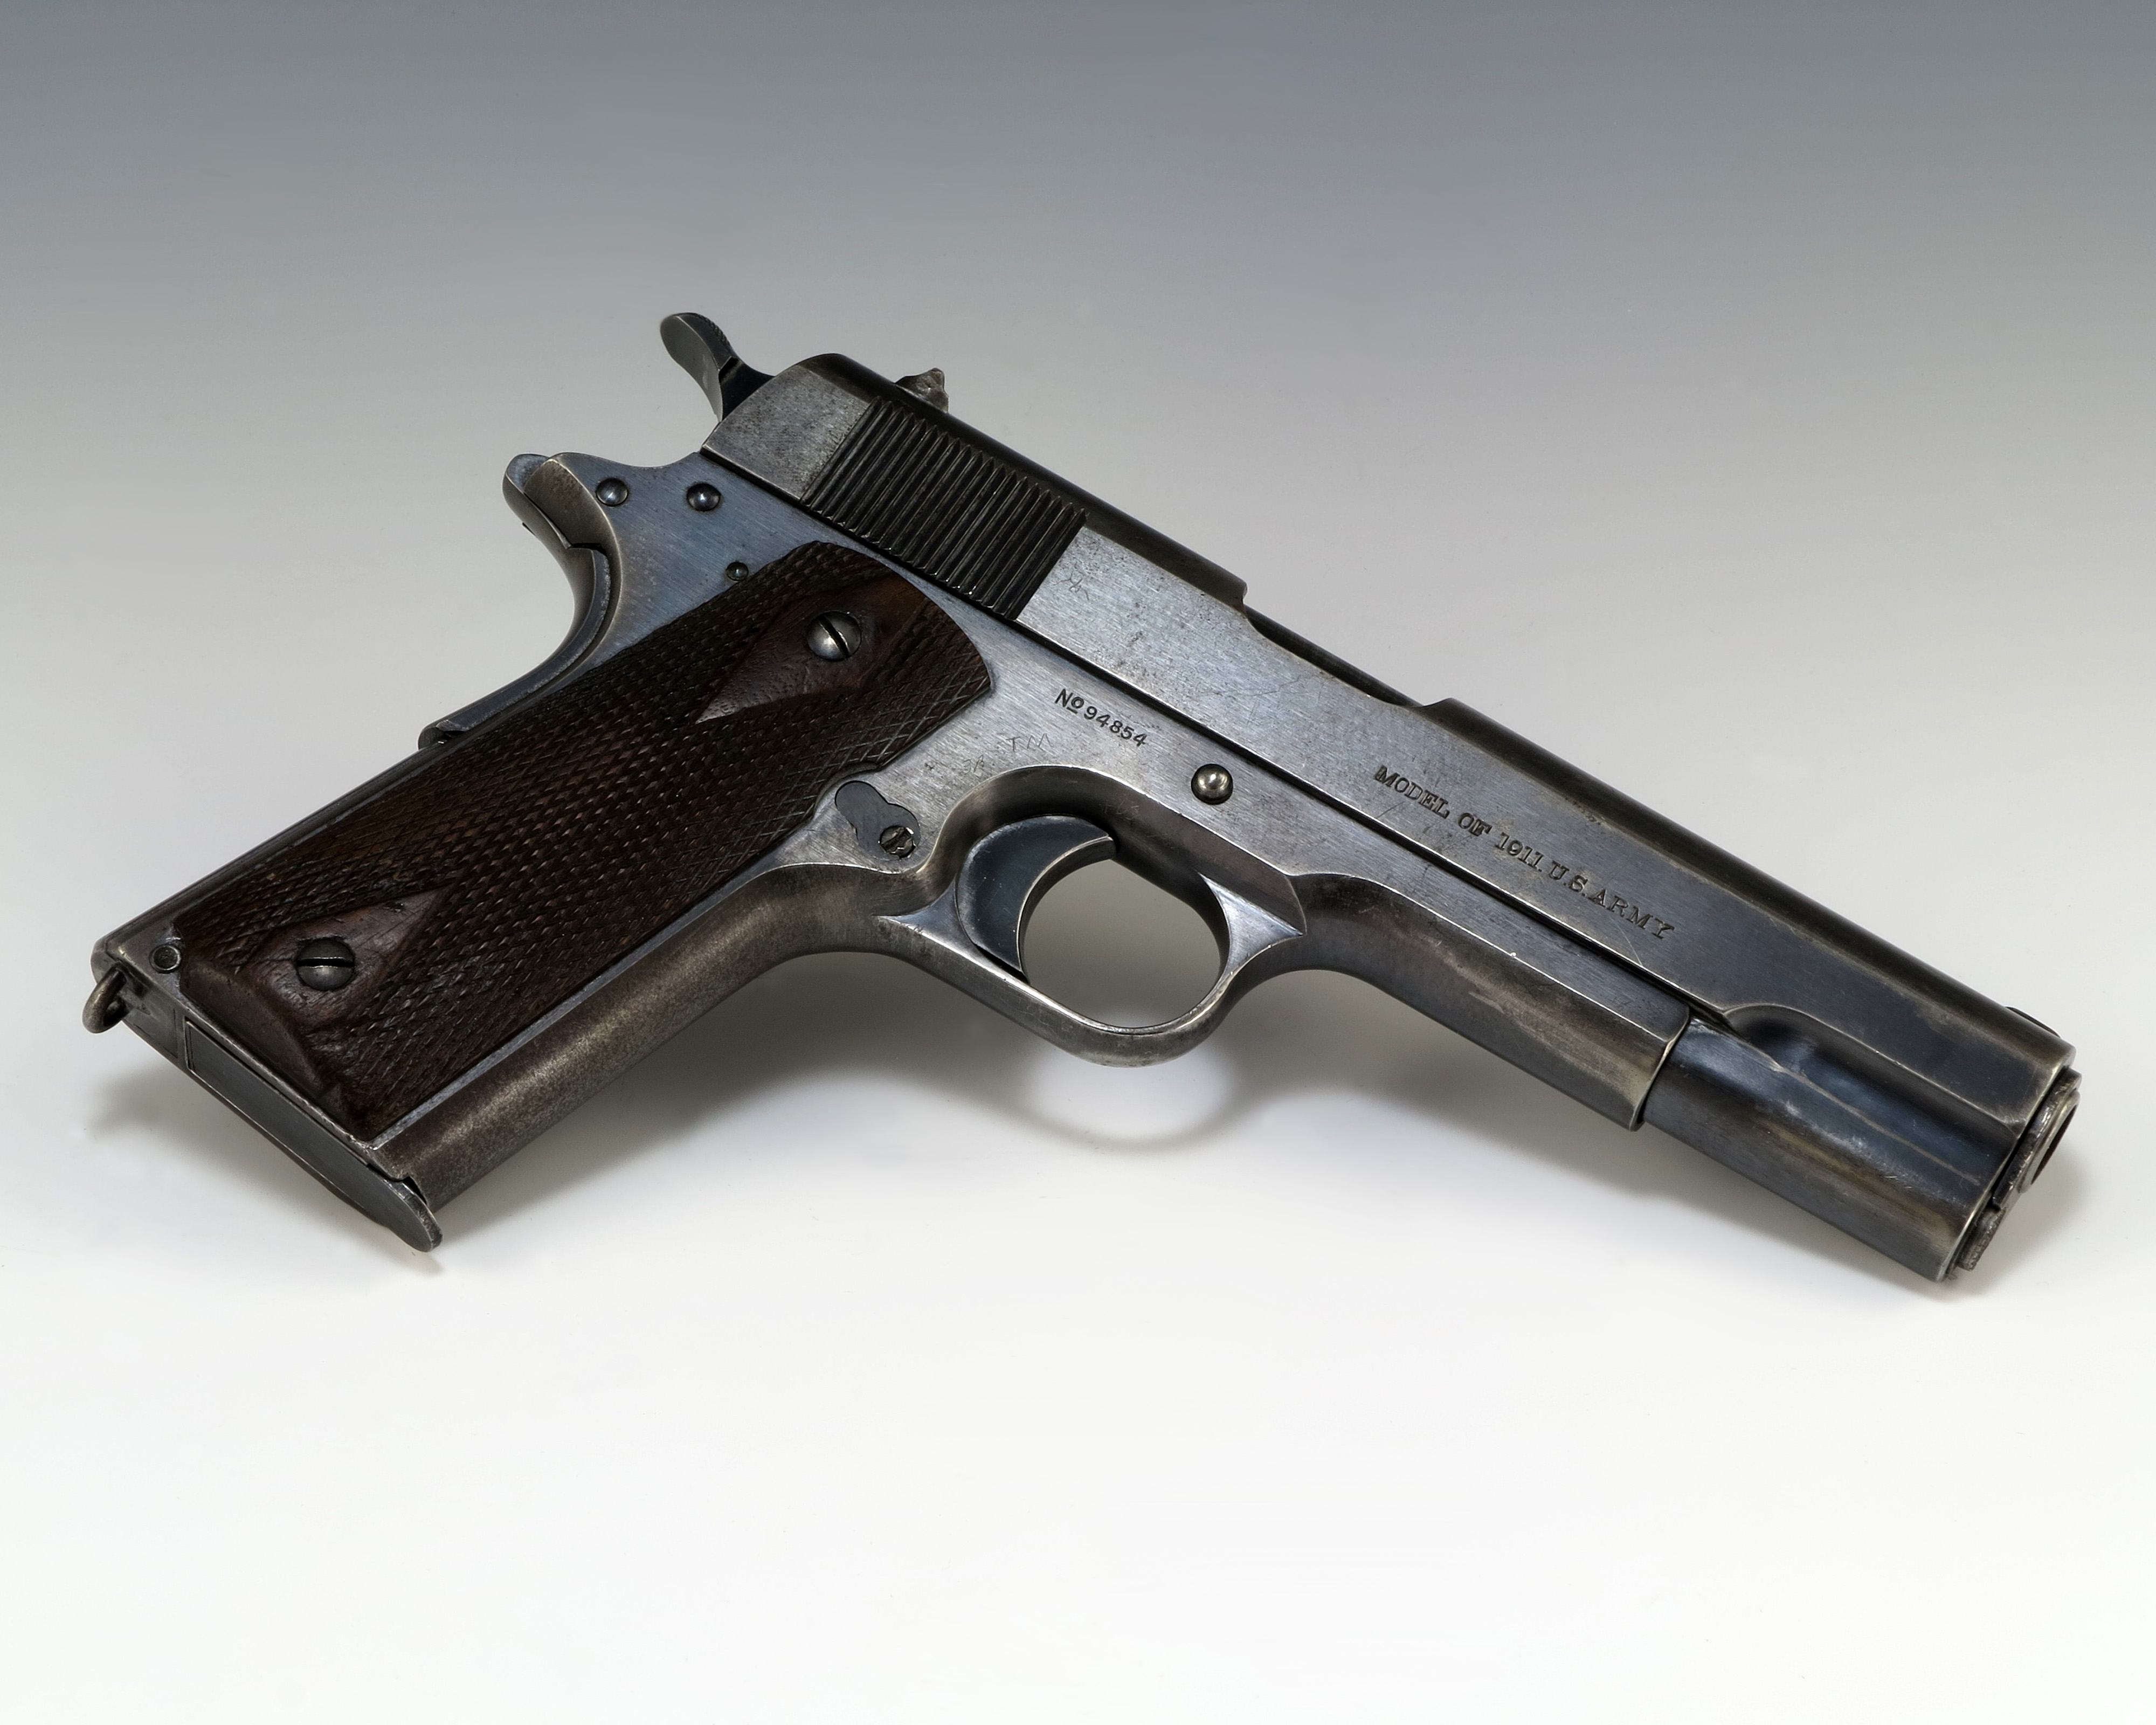 The .45 calibre Colt Model 1911 remained as popular with the troops in Vietnam as it was in both World Wars and Korea